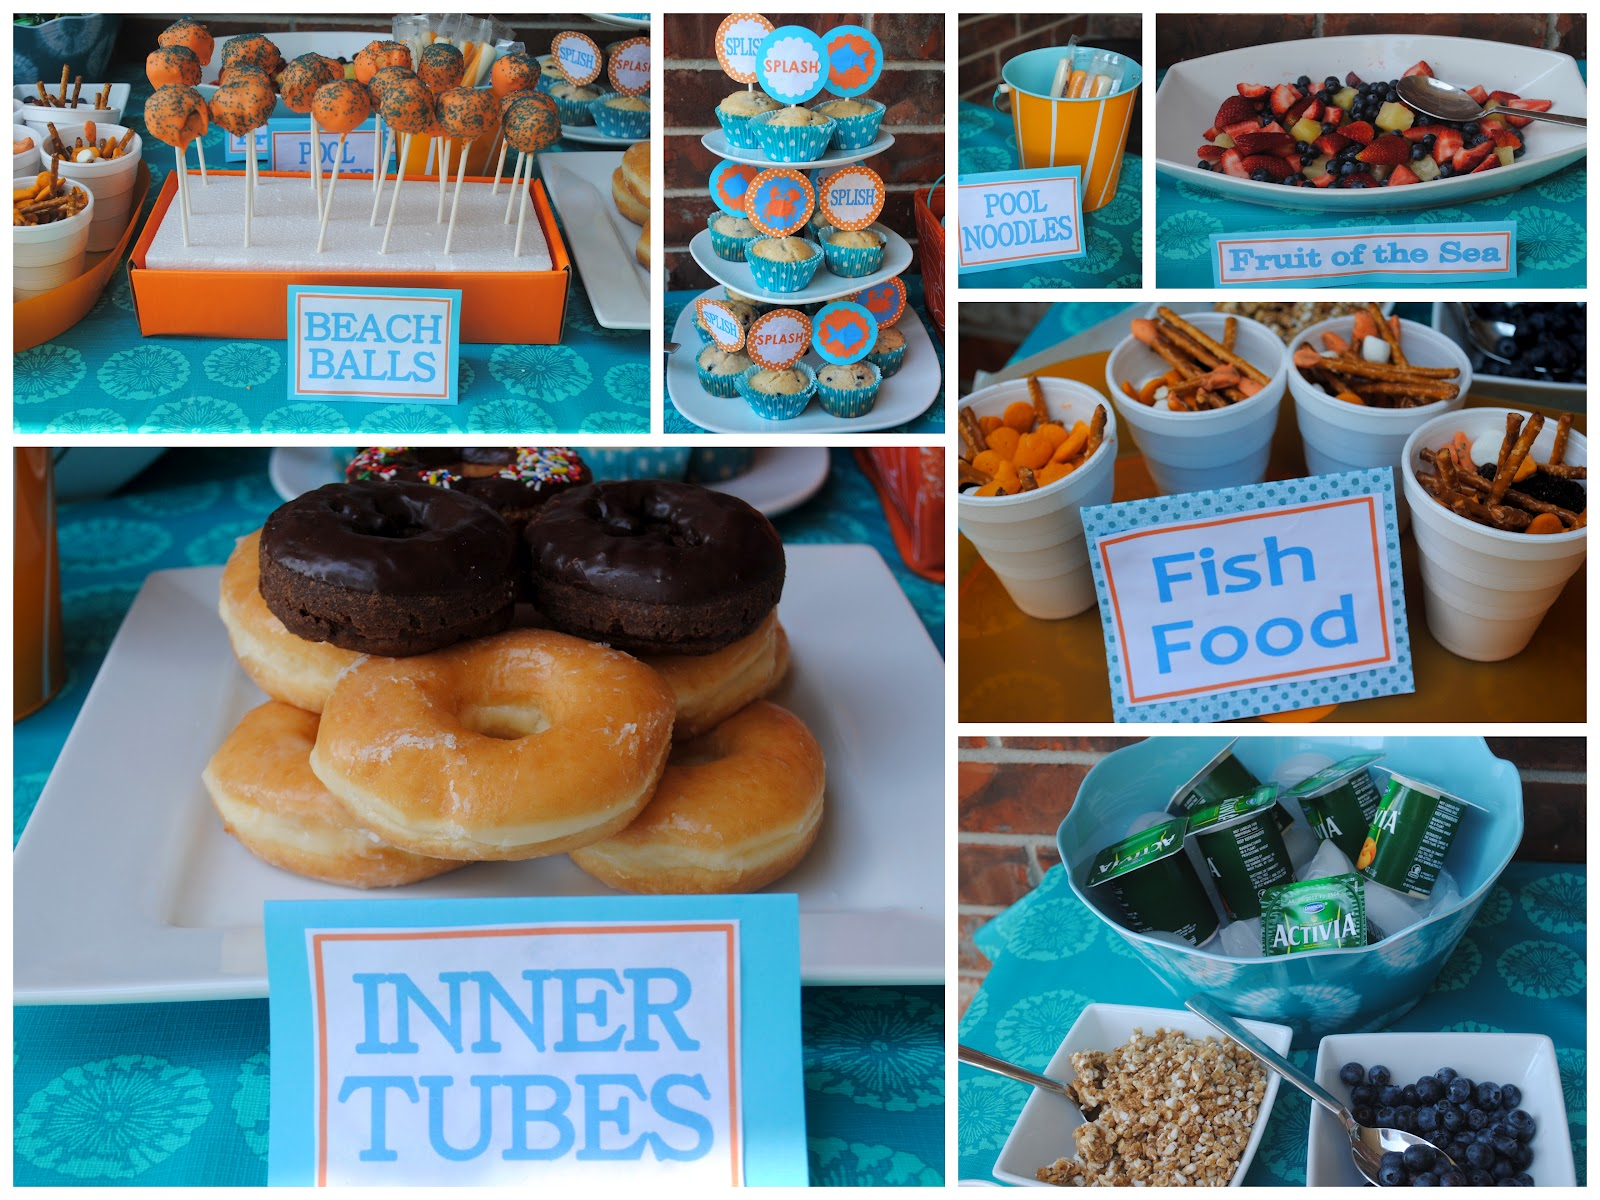 Preppy mom how to throw a sprinkler party for Pool and food